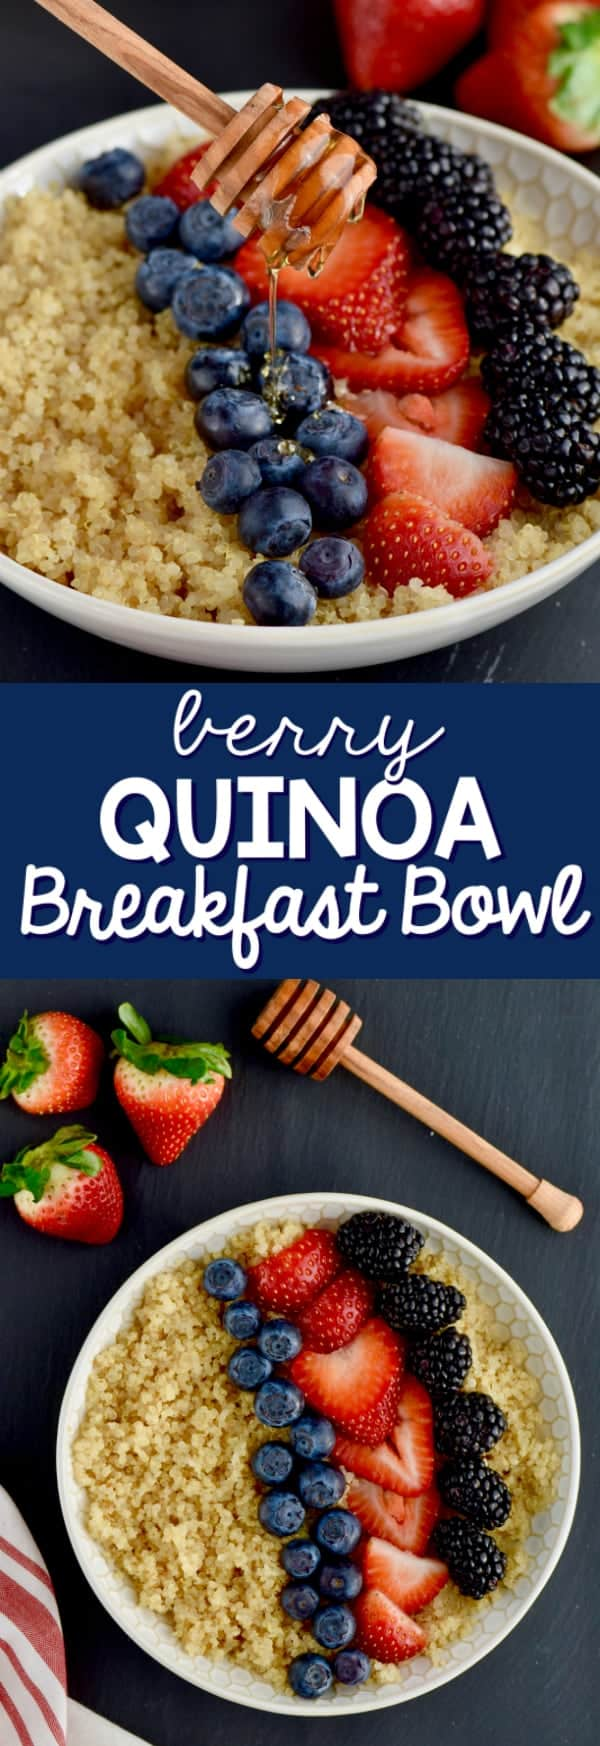 Photos of a bowl of Quinoa topped with blueberries, cut strawberries, and black berries.